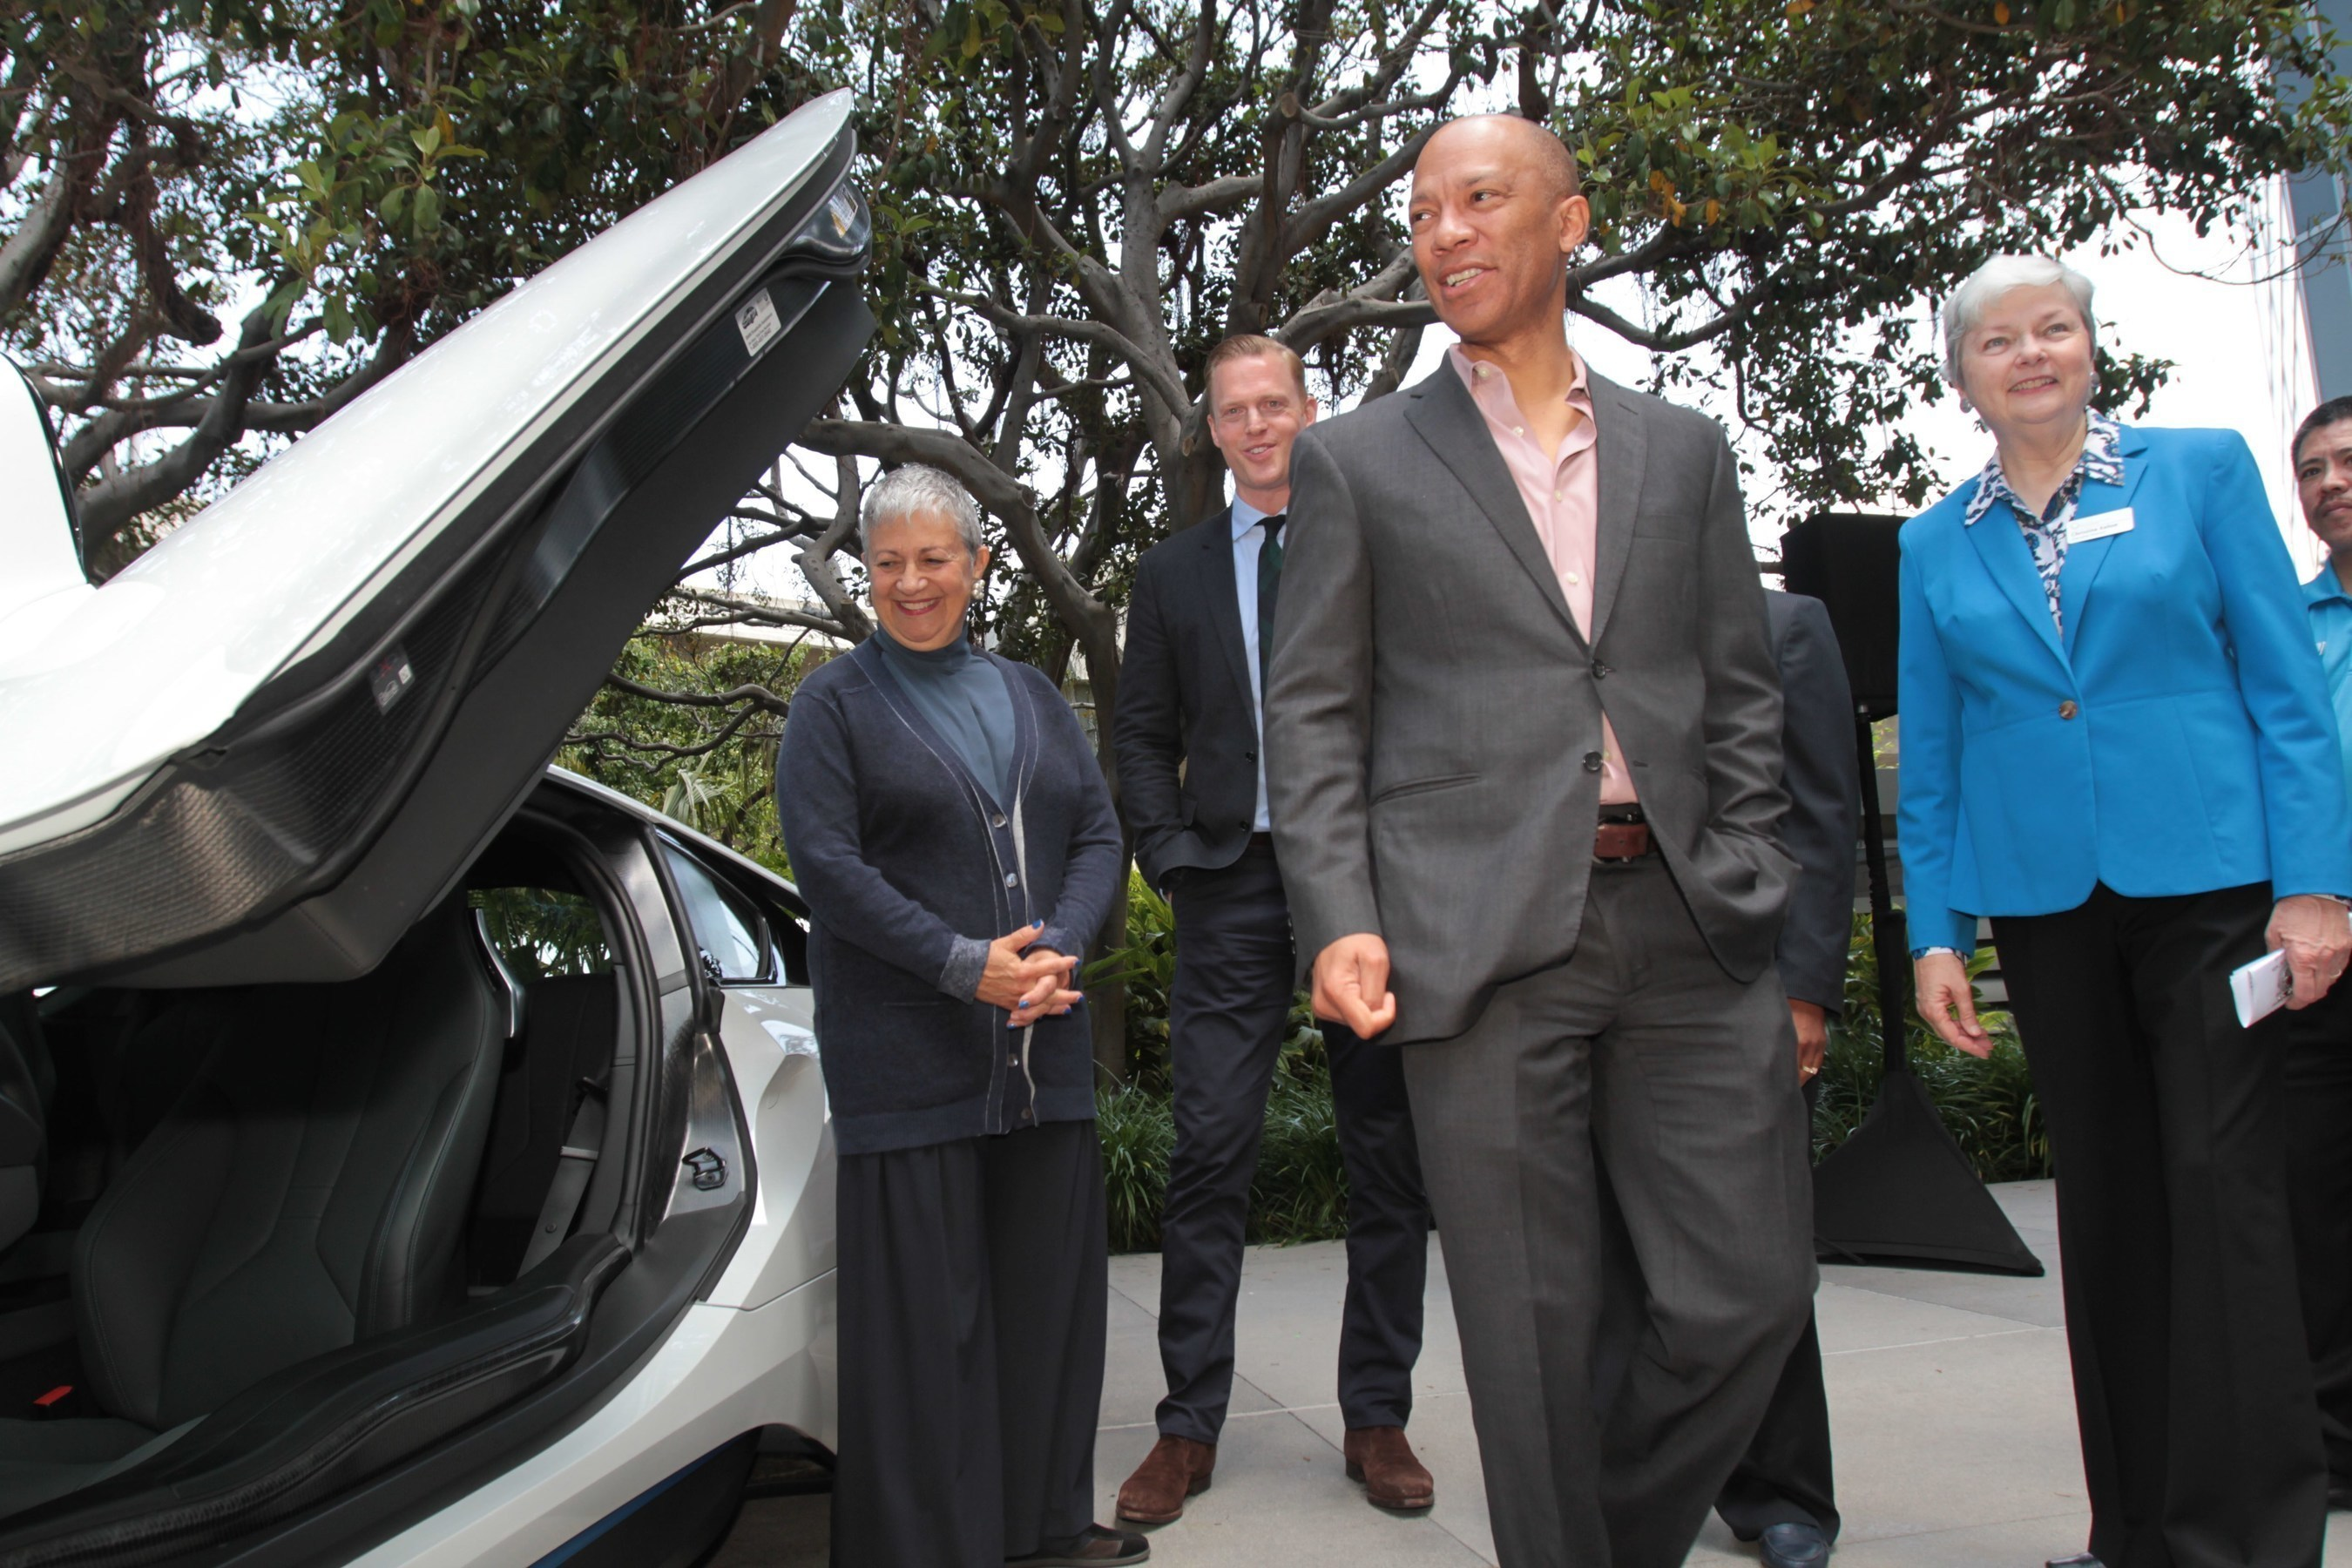 AT&T California And Statewide Electric Vehicle Collaborative Kick Off A Series Of Summer Ride-And-Drive Education Events To Help California Reach 250,000 EV Milestone